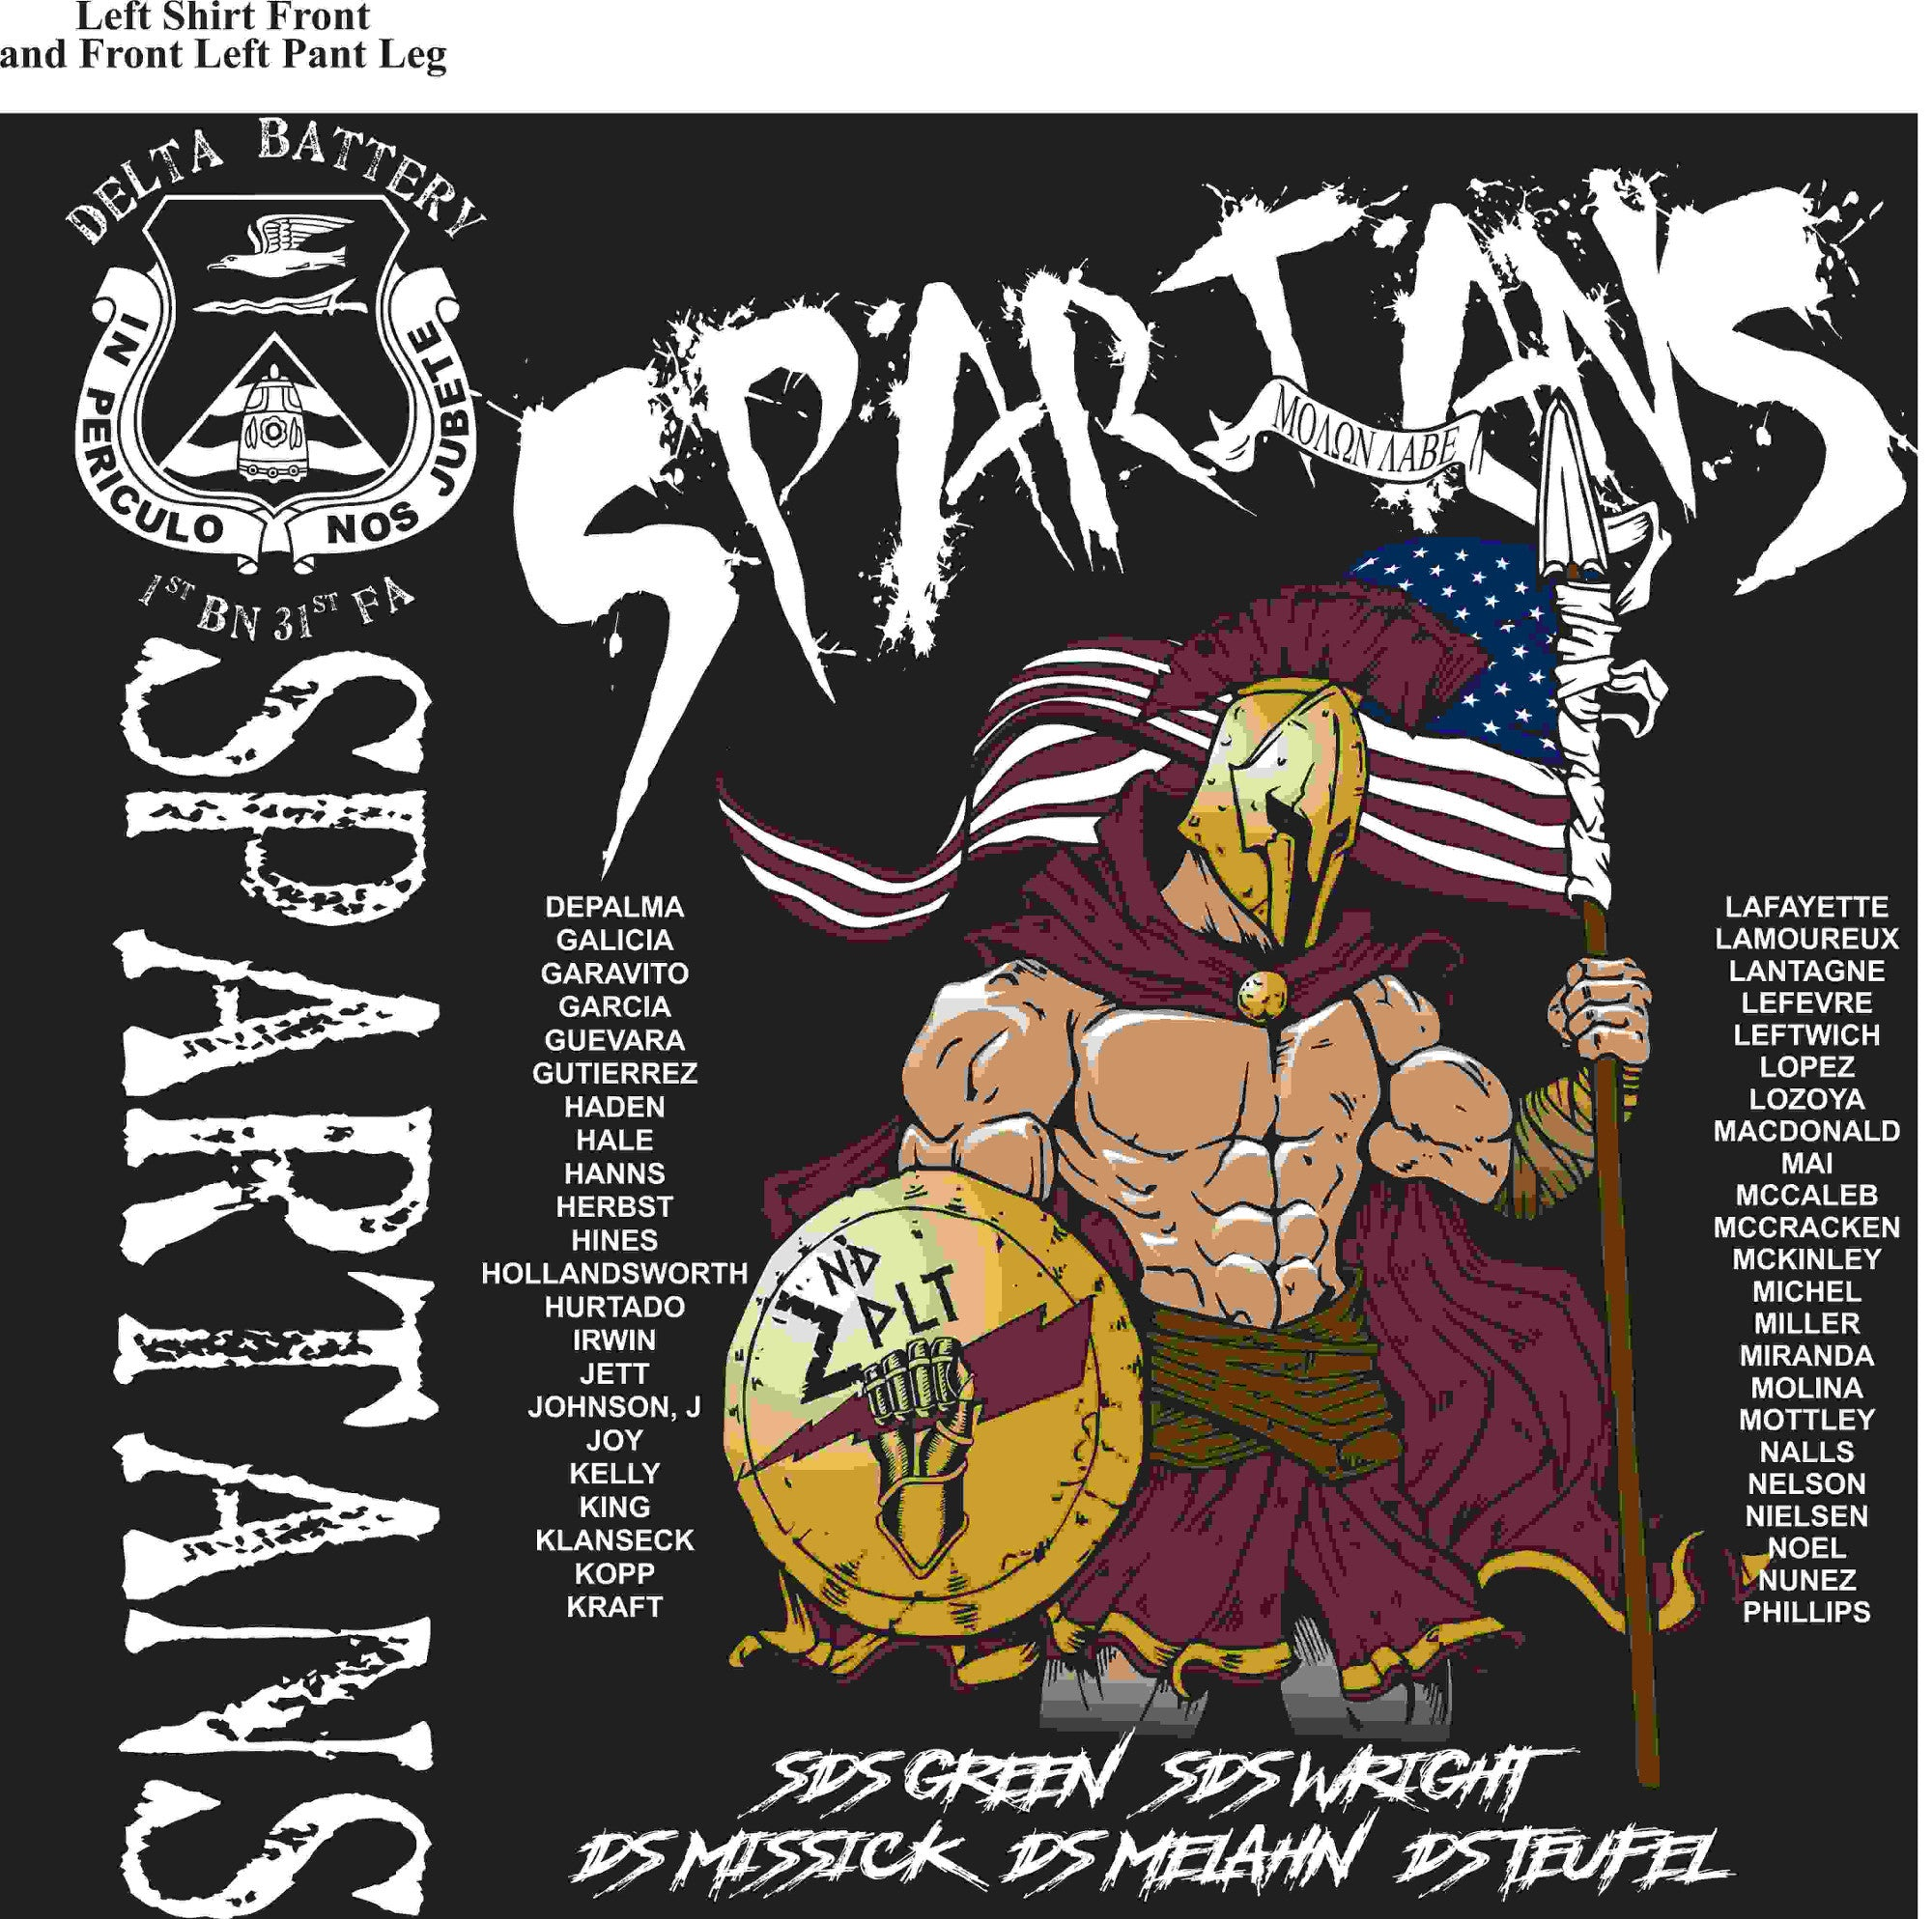 PLATOON SHIRTS (2nd generation print) DELTA 1st 31st SPARTANS JUNE 2016